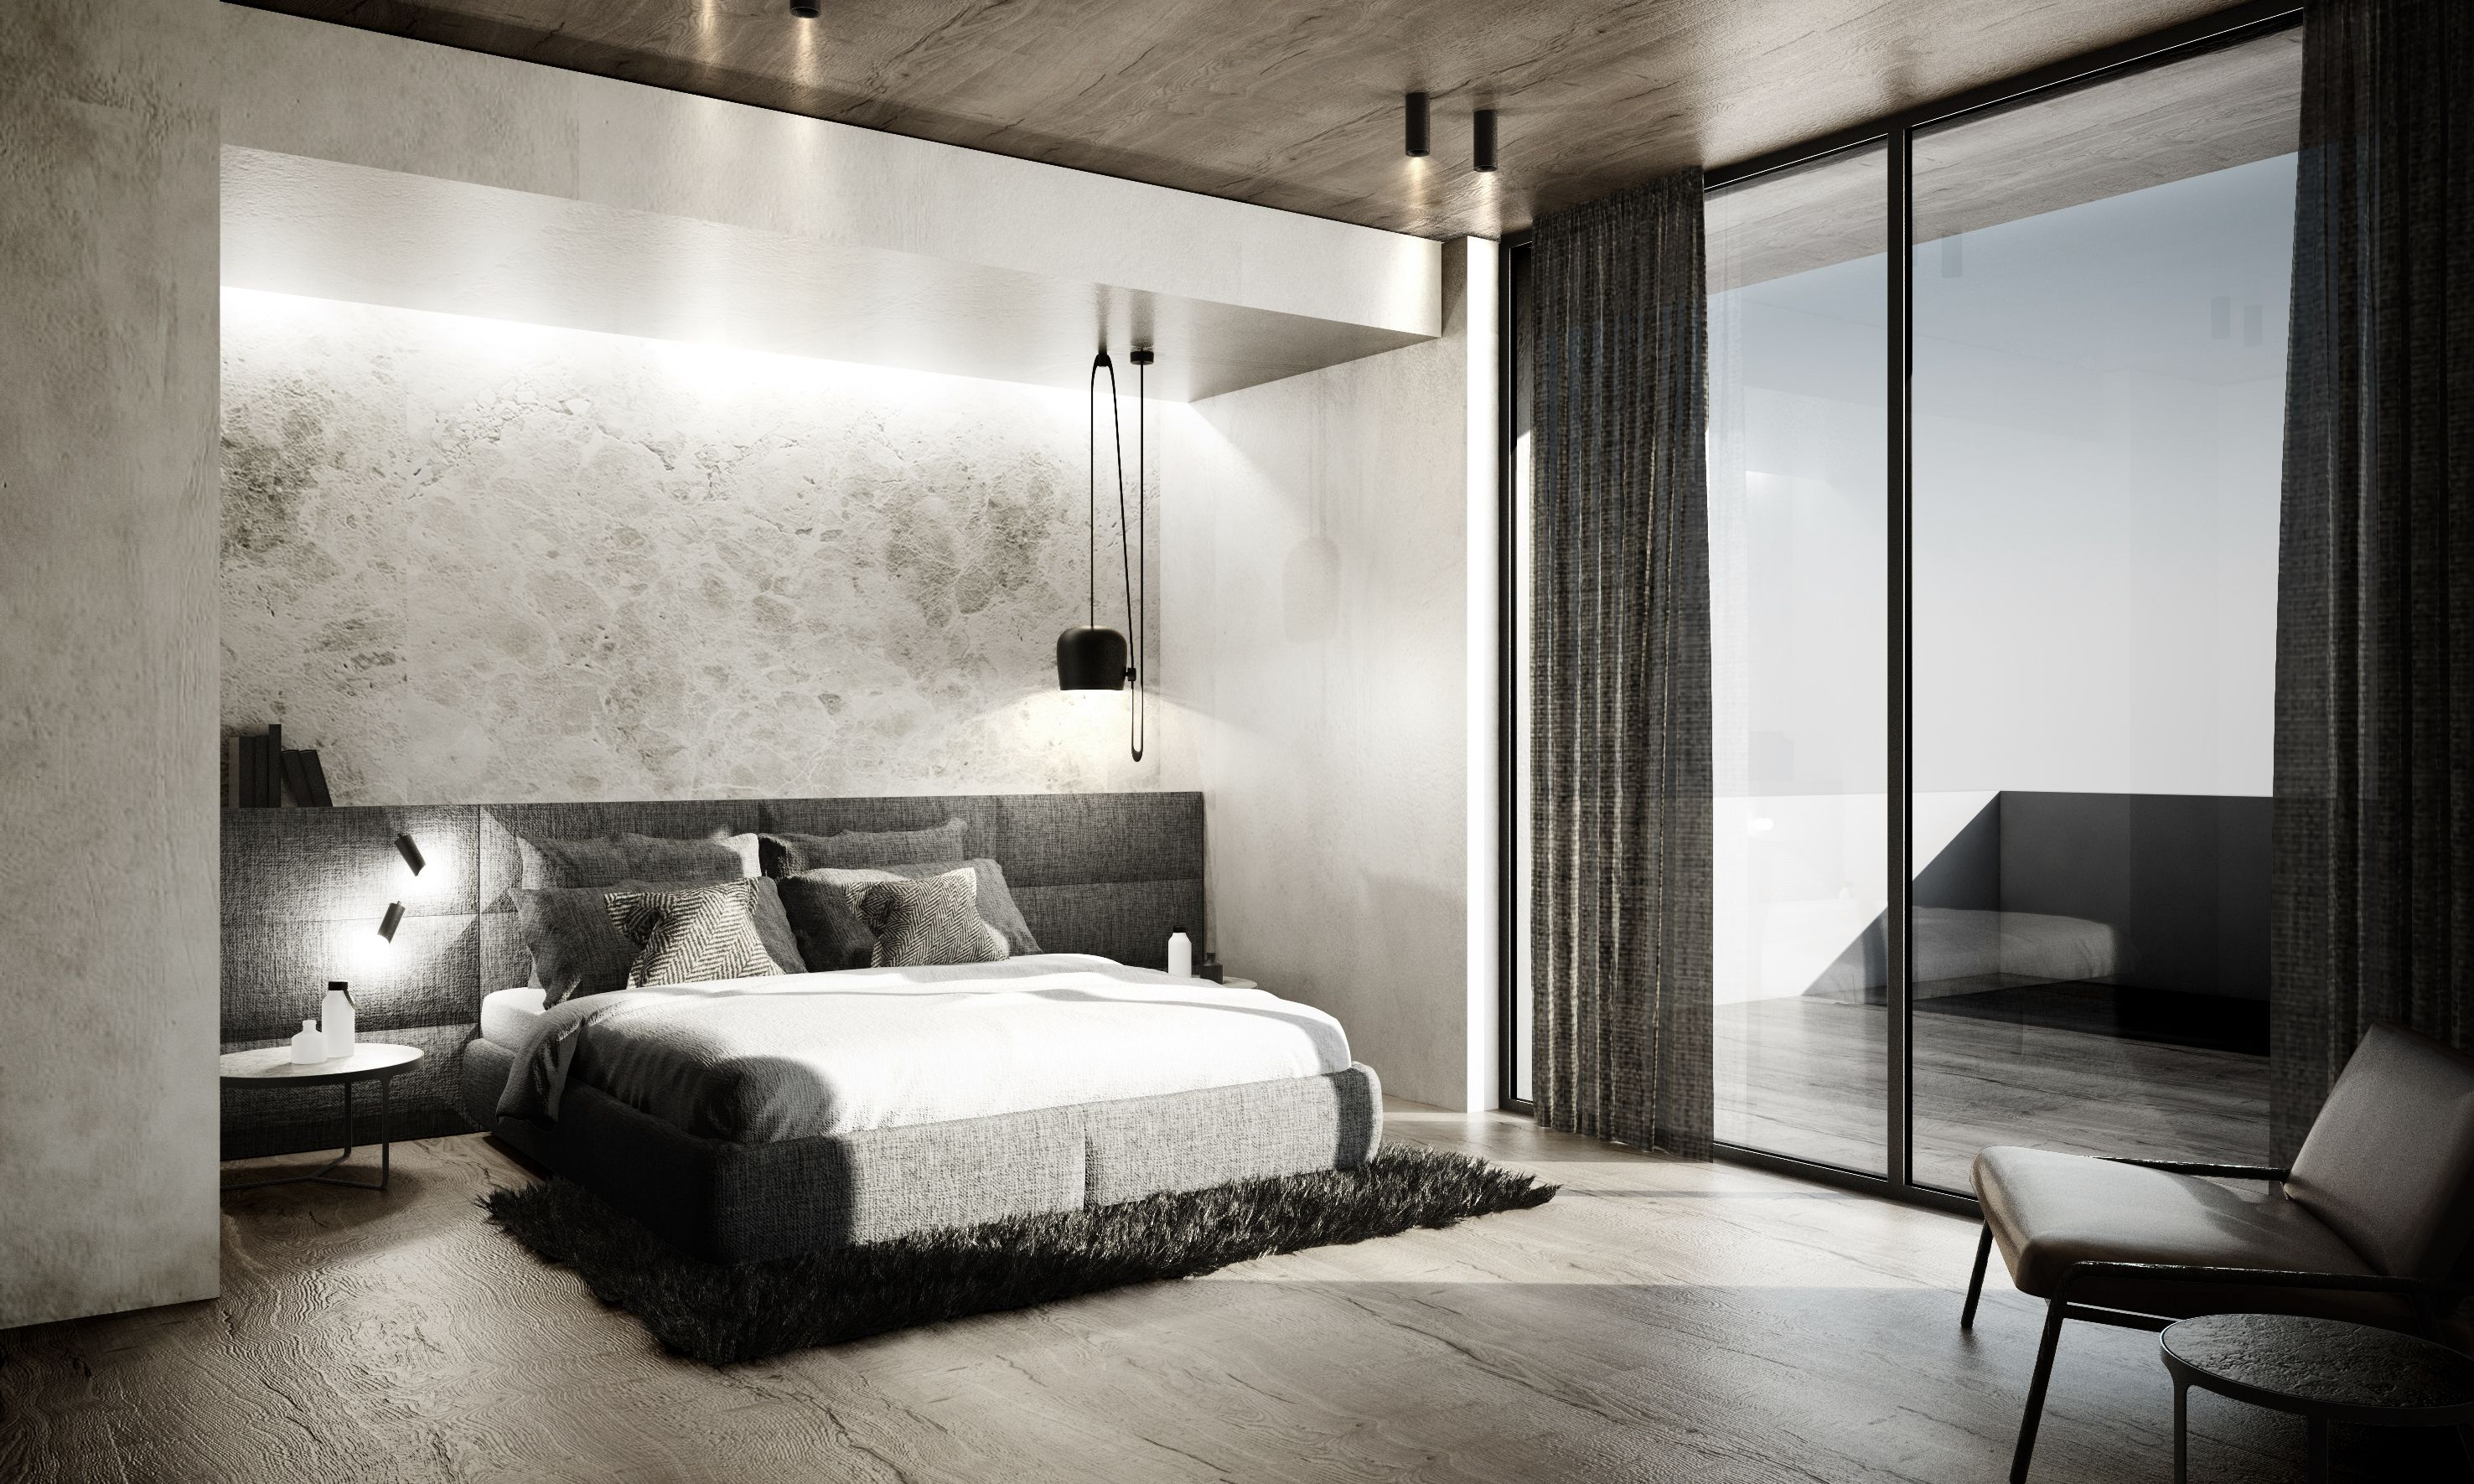 Giacuzzoarchitects #Interiordesign#Masterbedroom#Texture#Materials#Finishes#Marble#Stone#